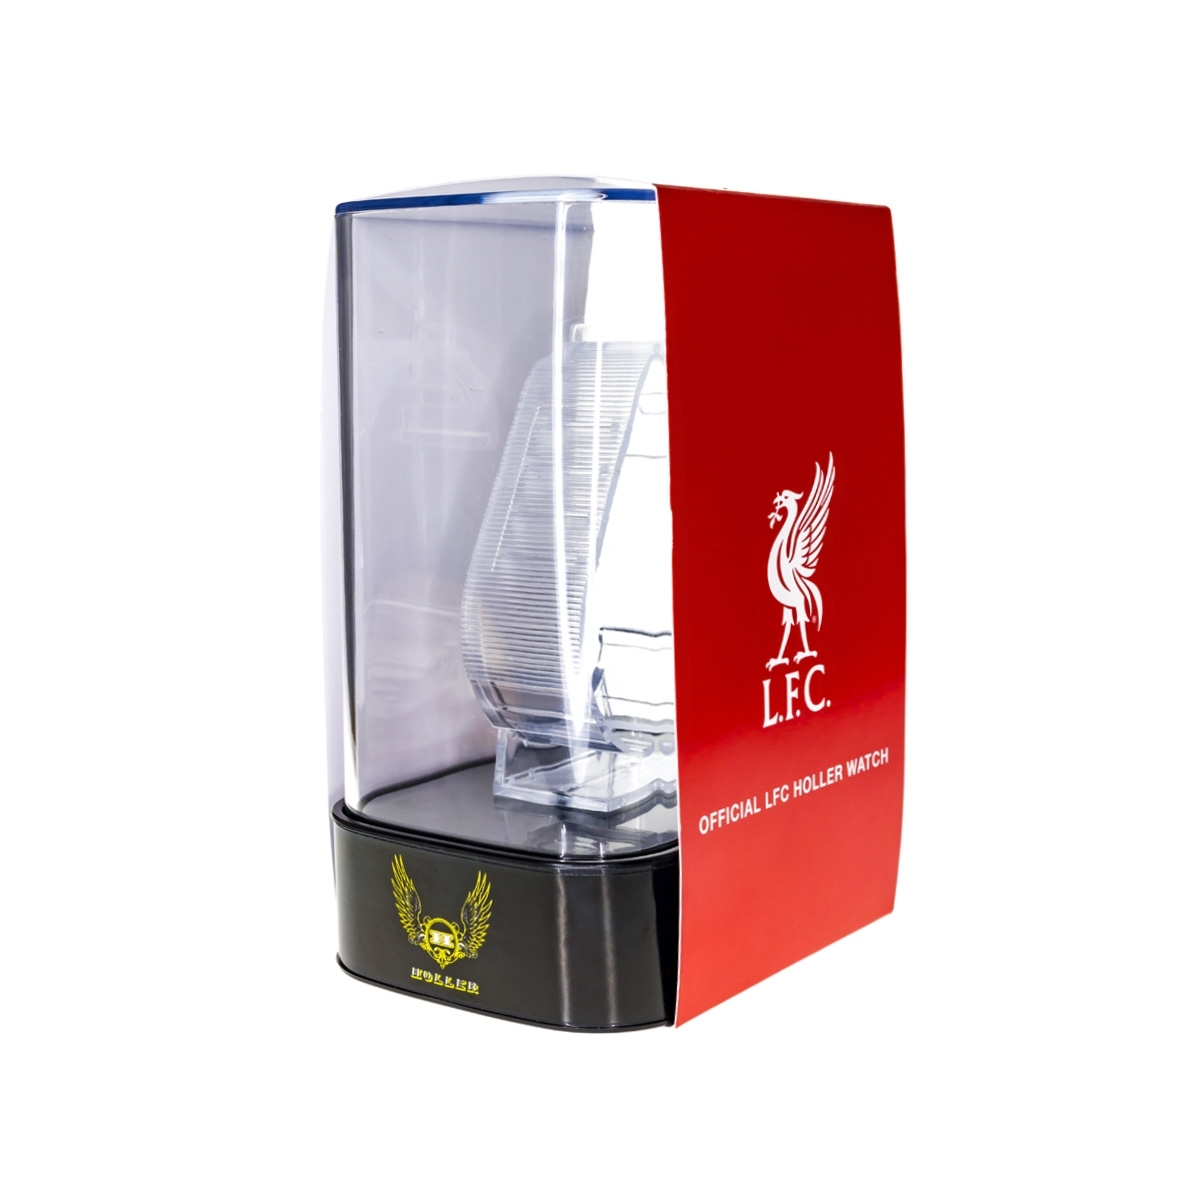 Kop Liverpool FC Watch 2